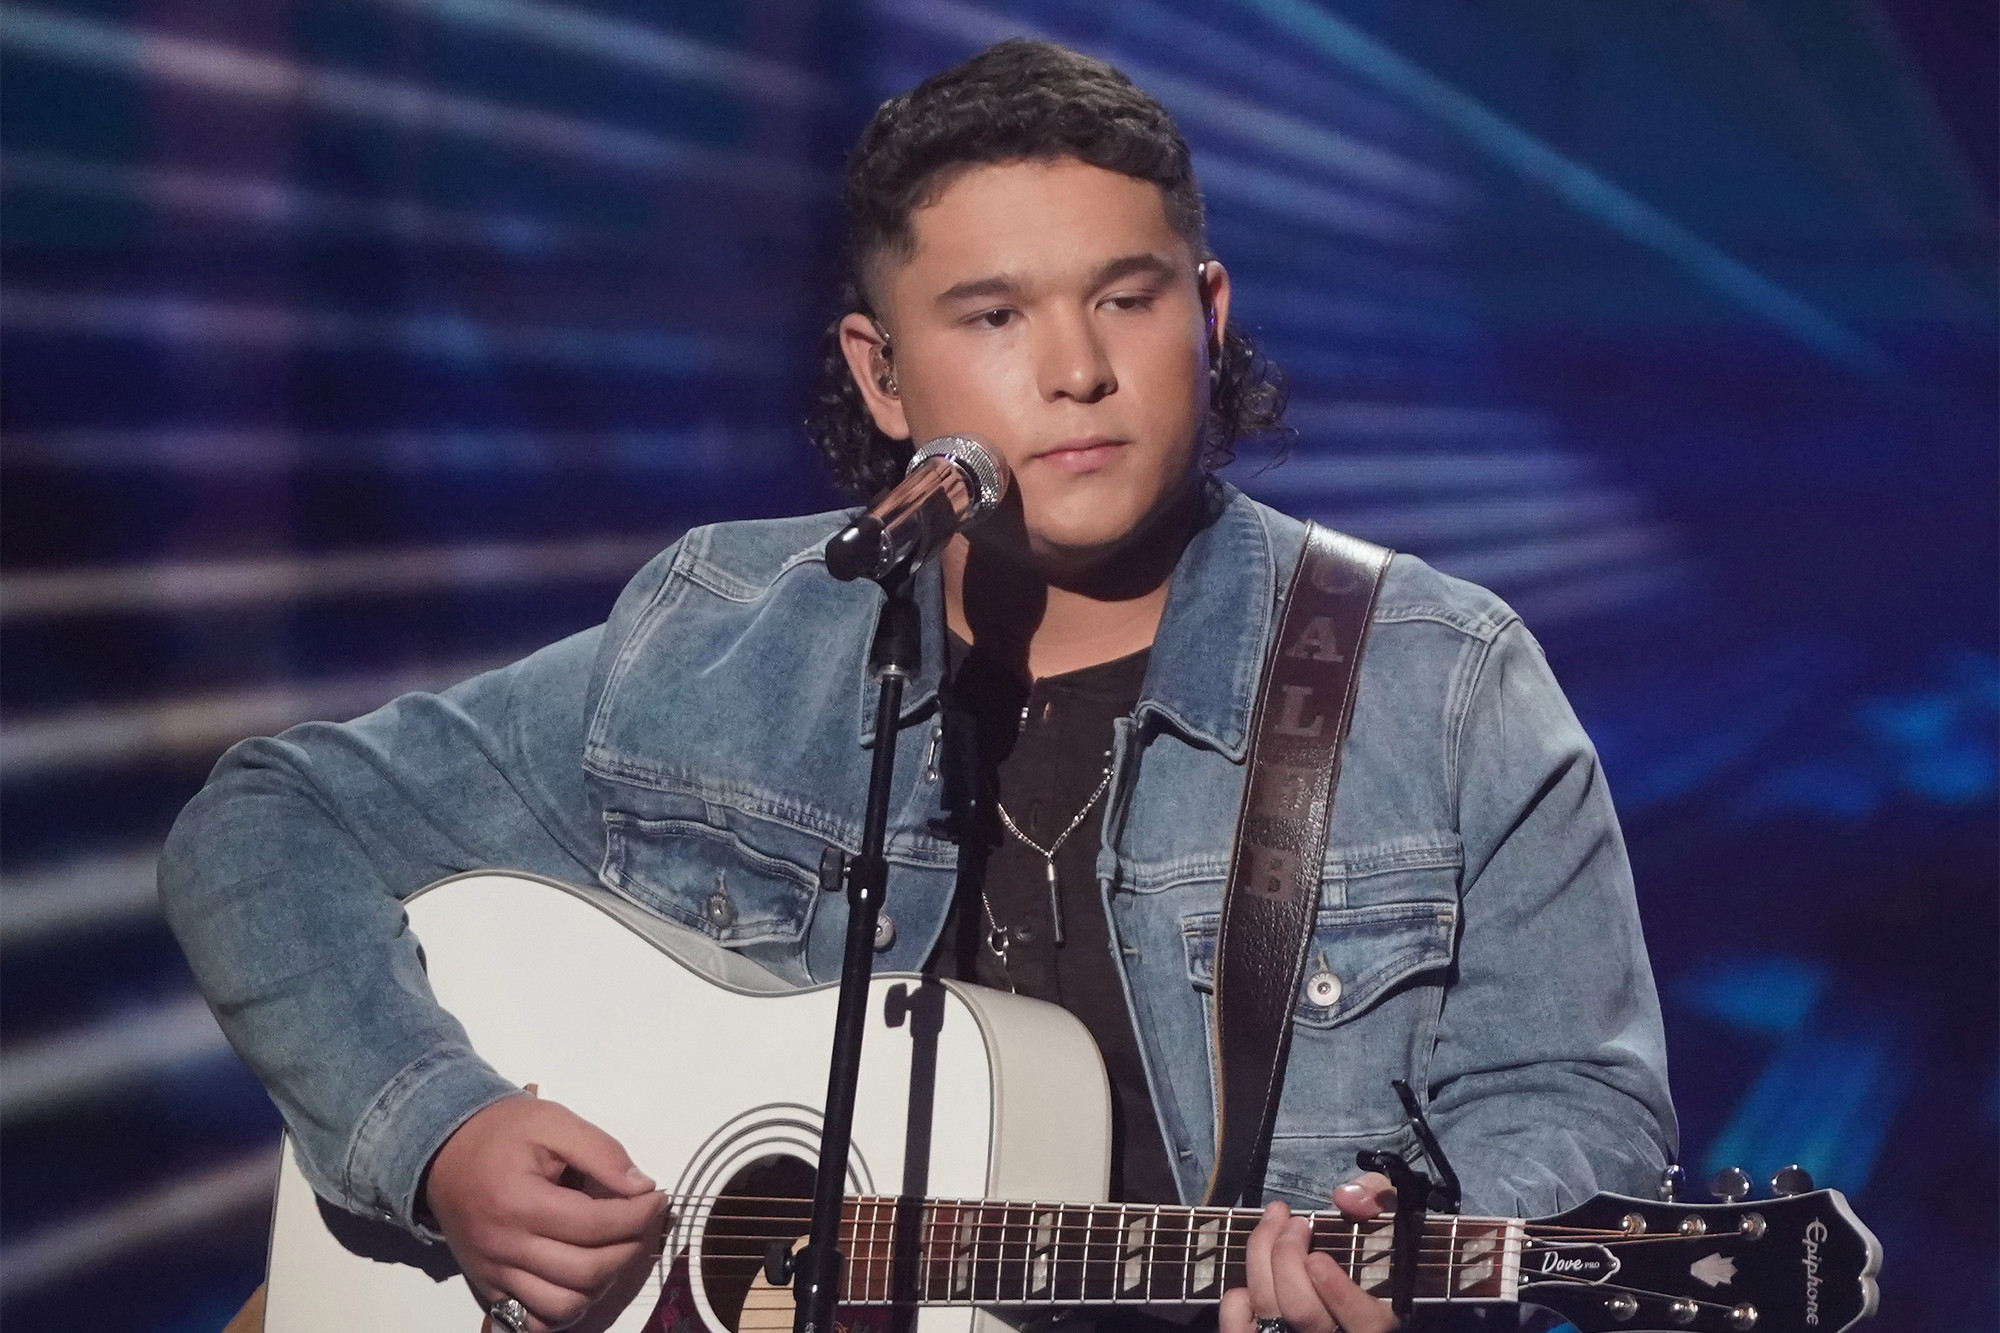 American Idol finalist Caleb Kennedy out after video surfaces